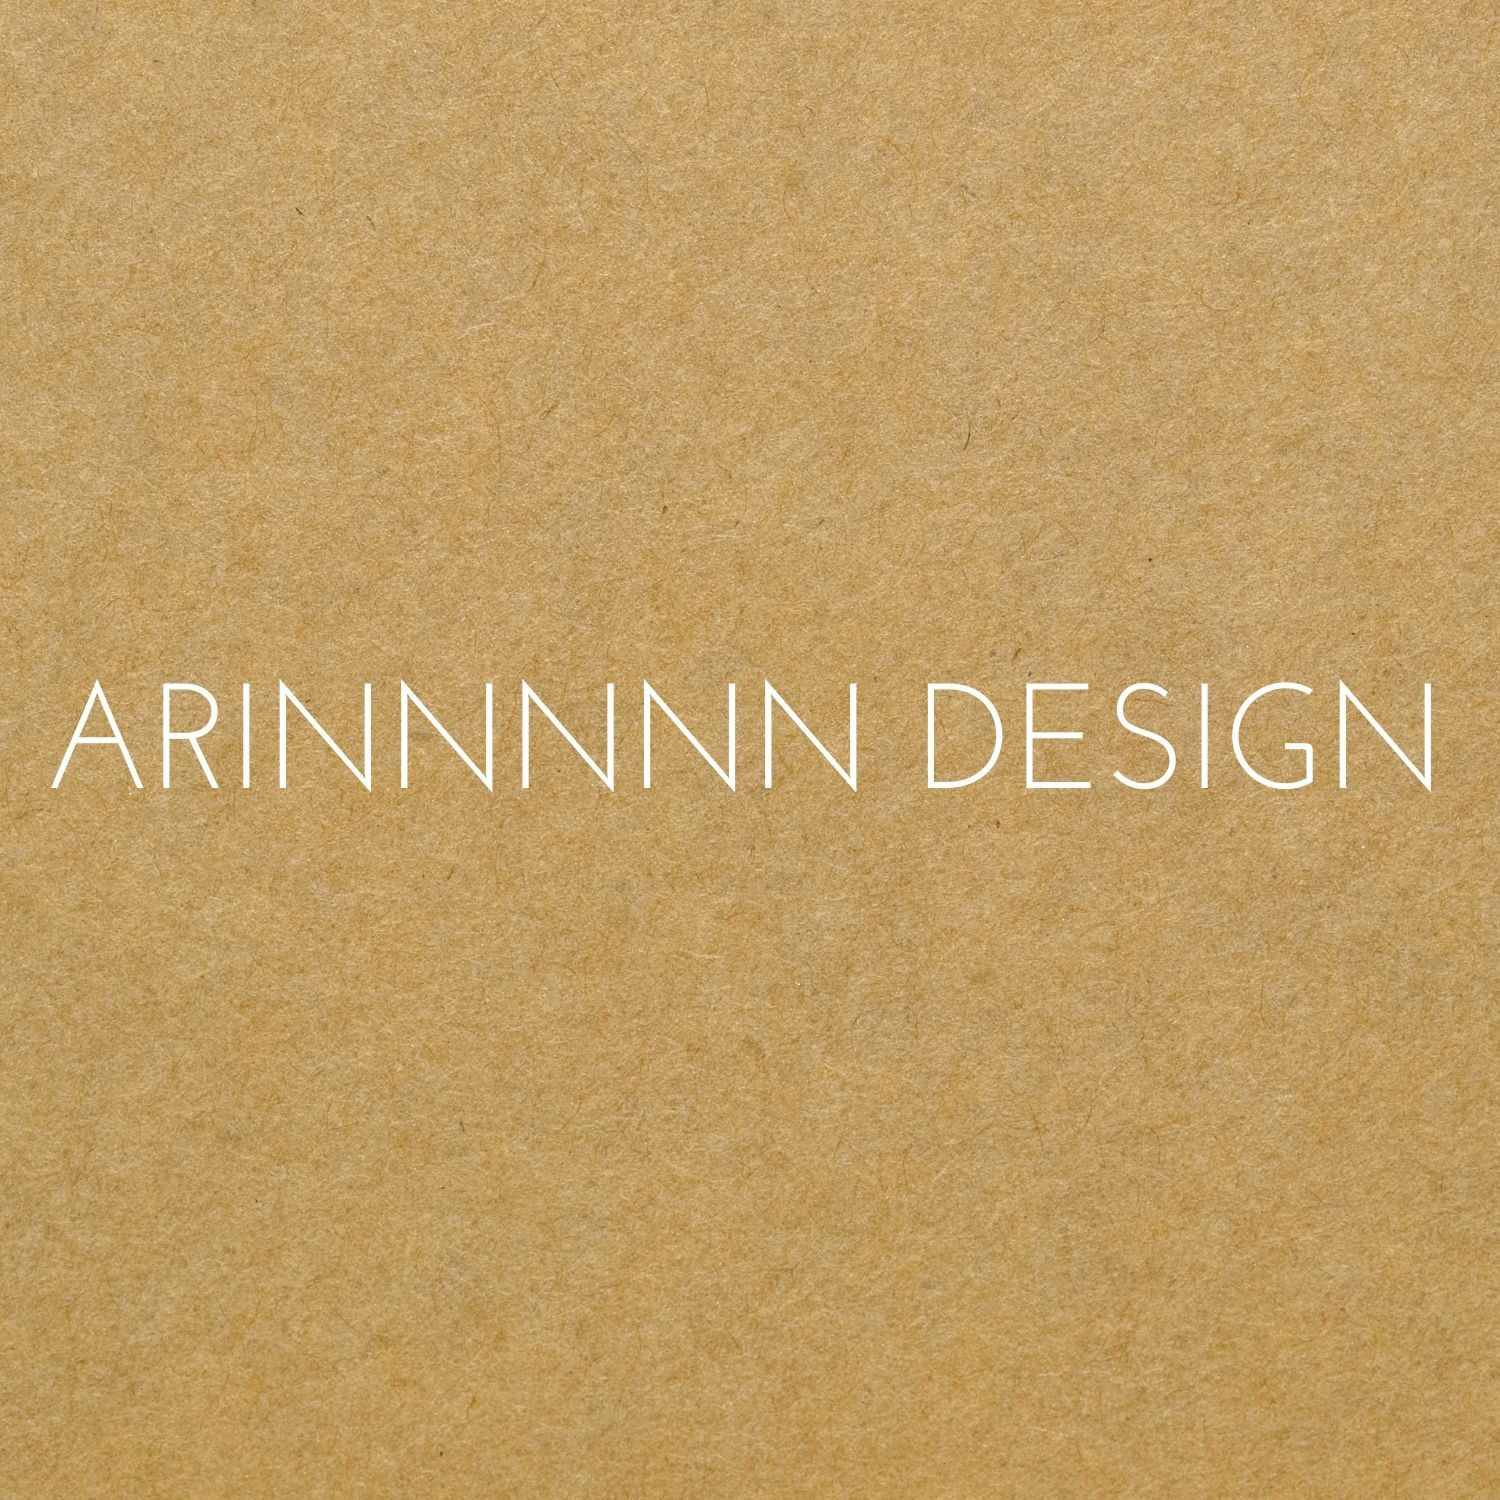 Arinnnnn Design's profile picture